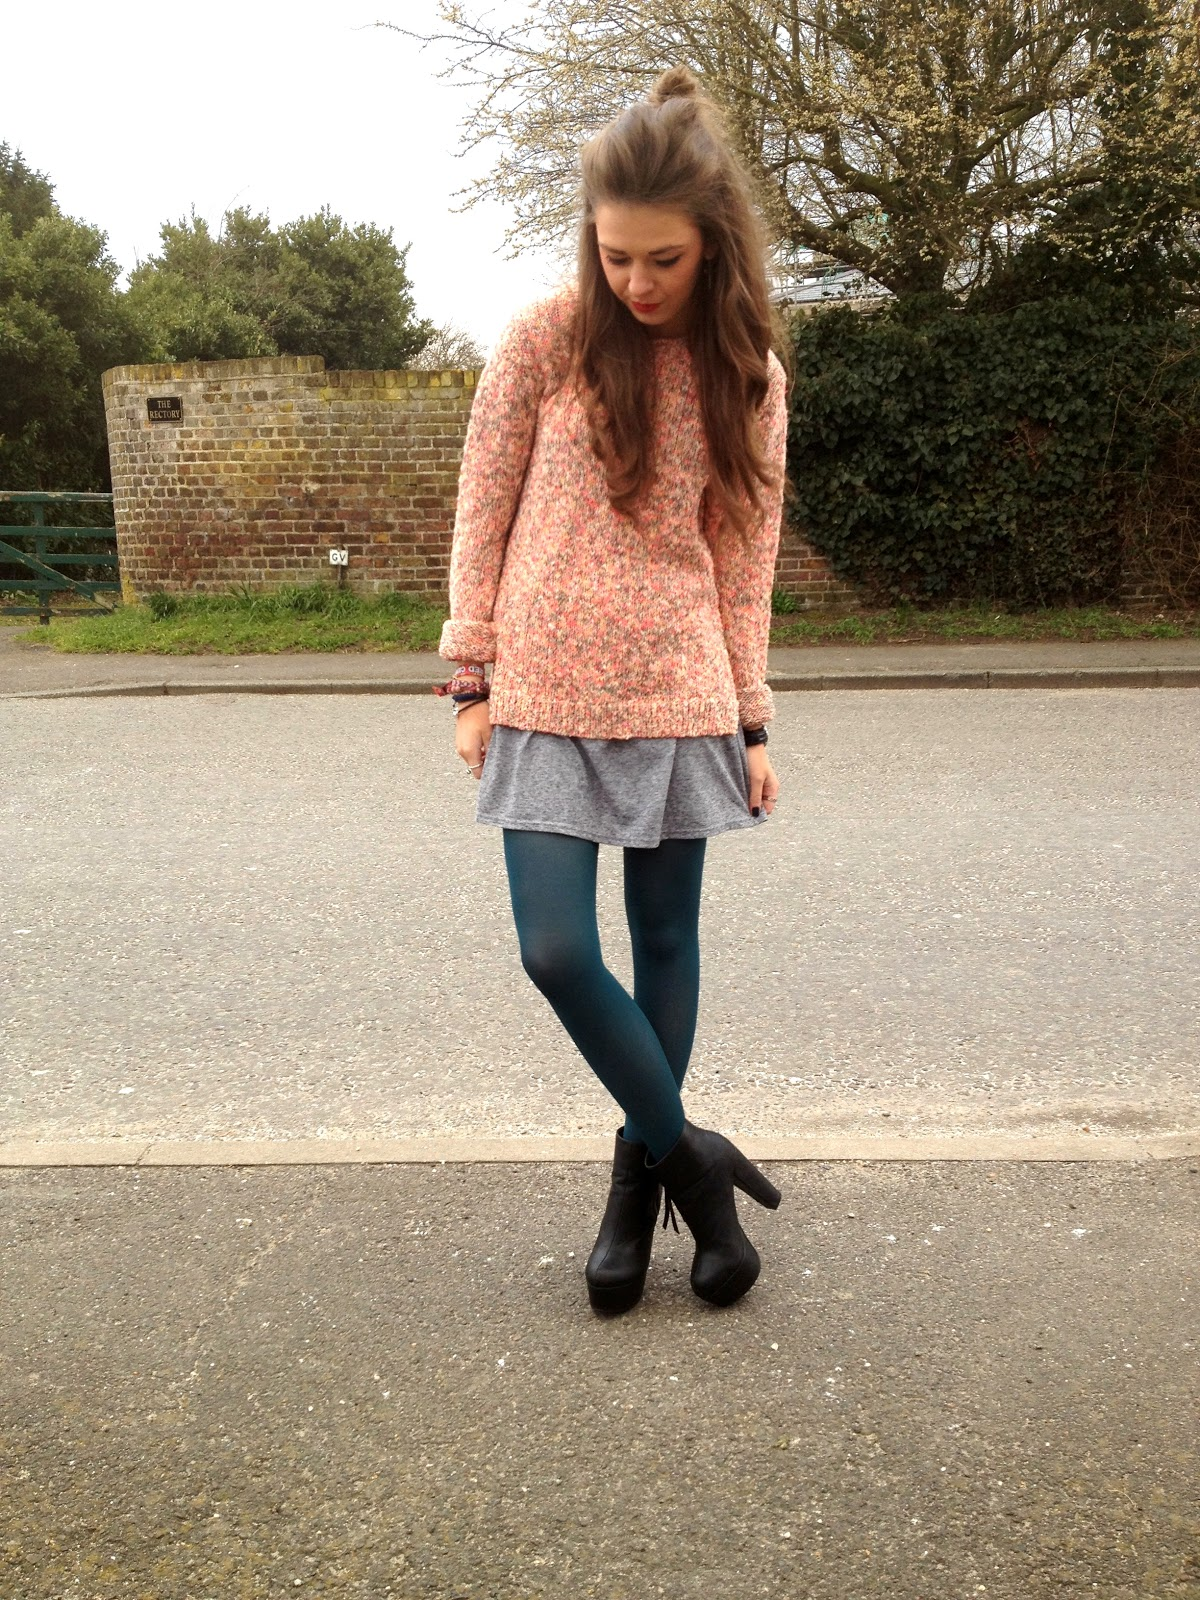 Fashion and style blog, picture of pink jumper, grey dress and green tights outfit